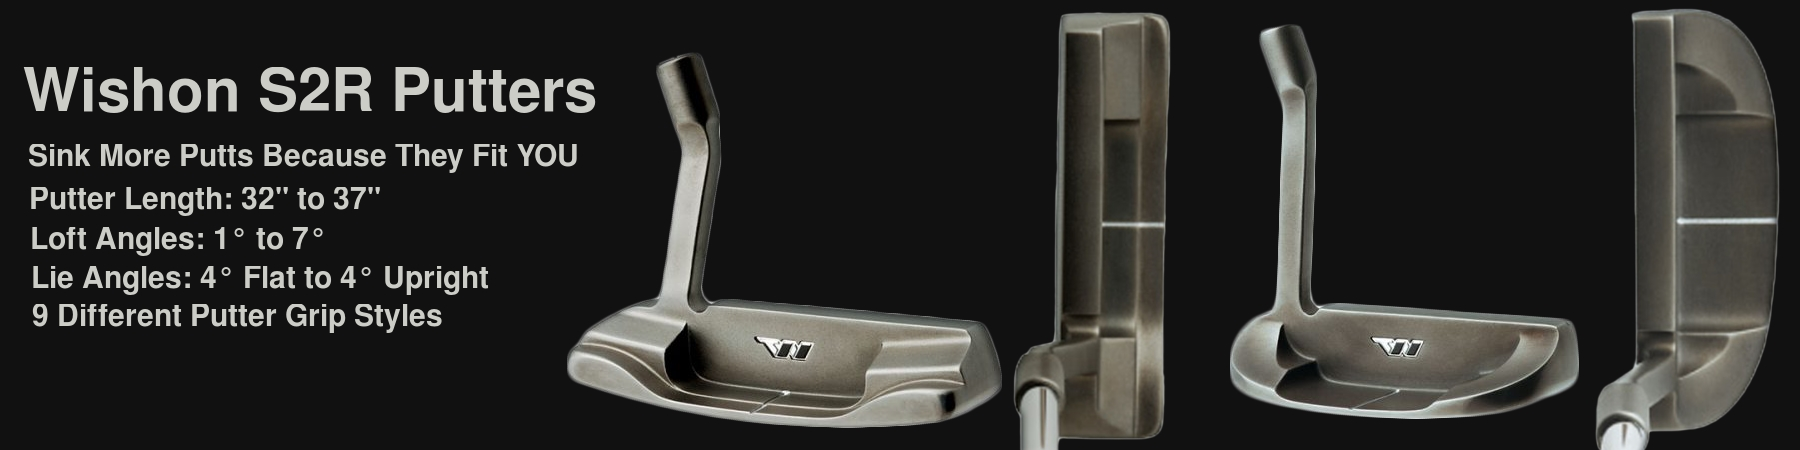 Wishon S2R Putters